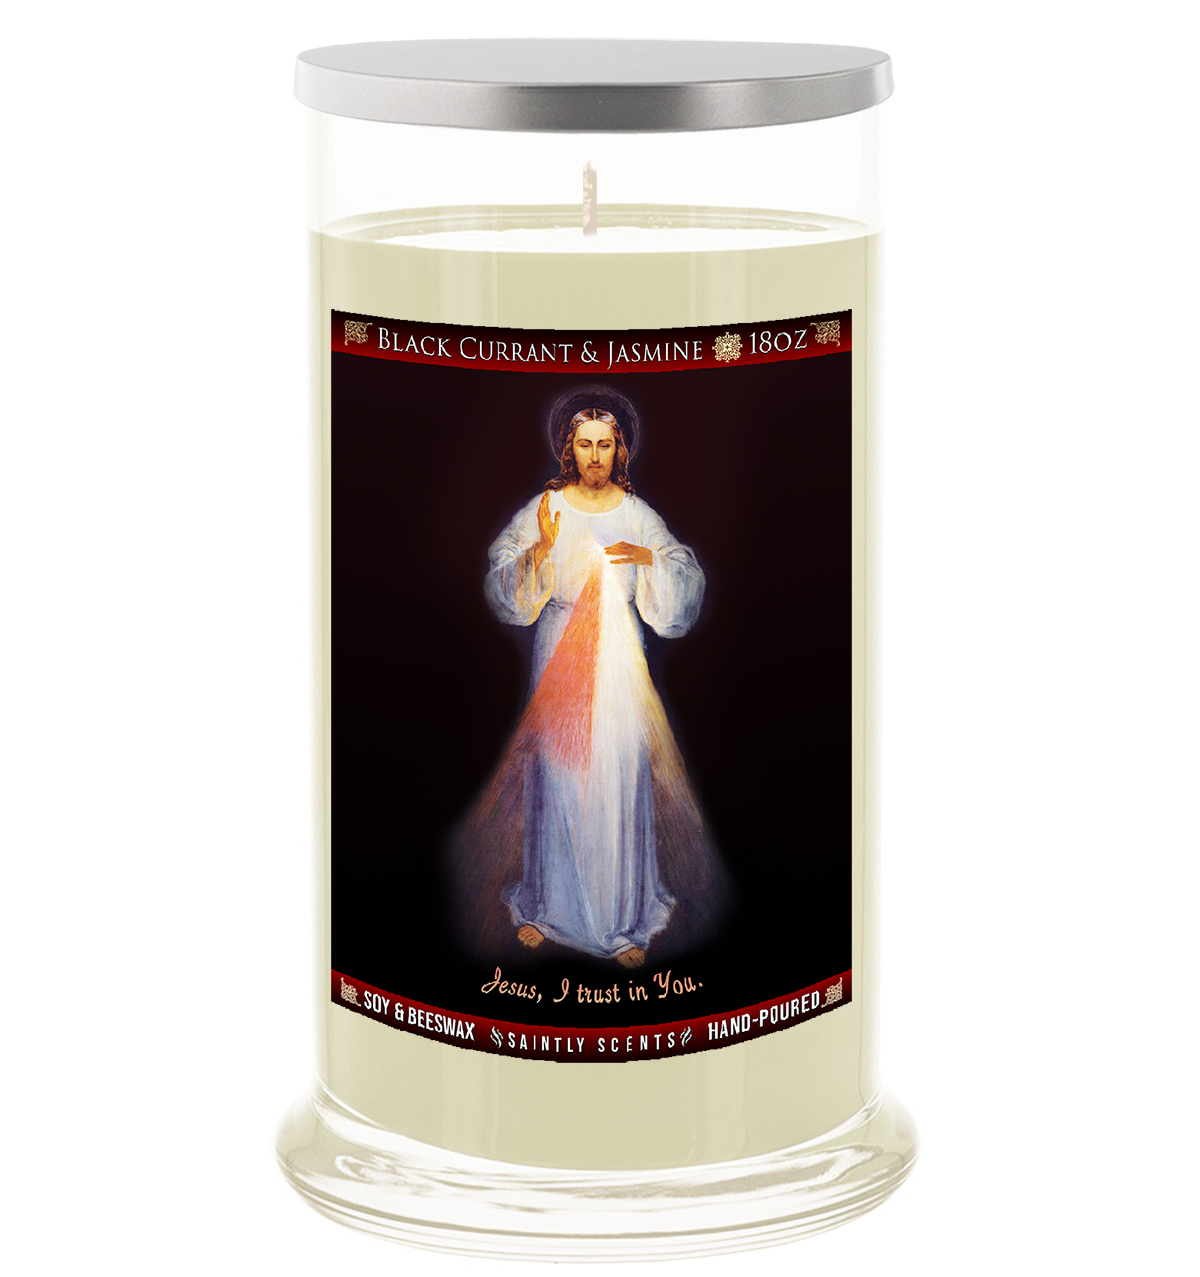 Divine Mercy Painting Scented Prayer Candle - Black Currant and Jasmine